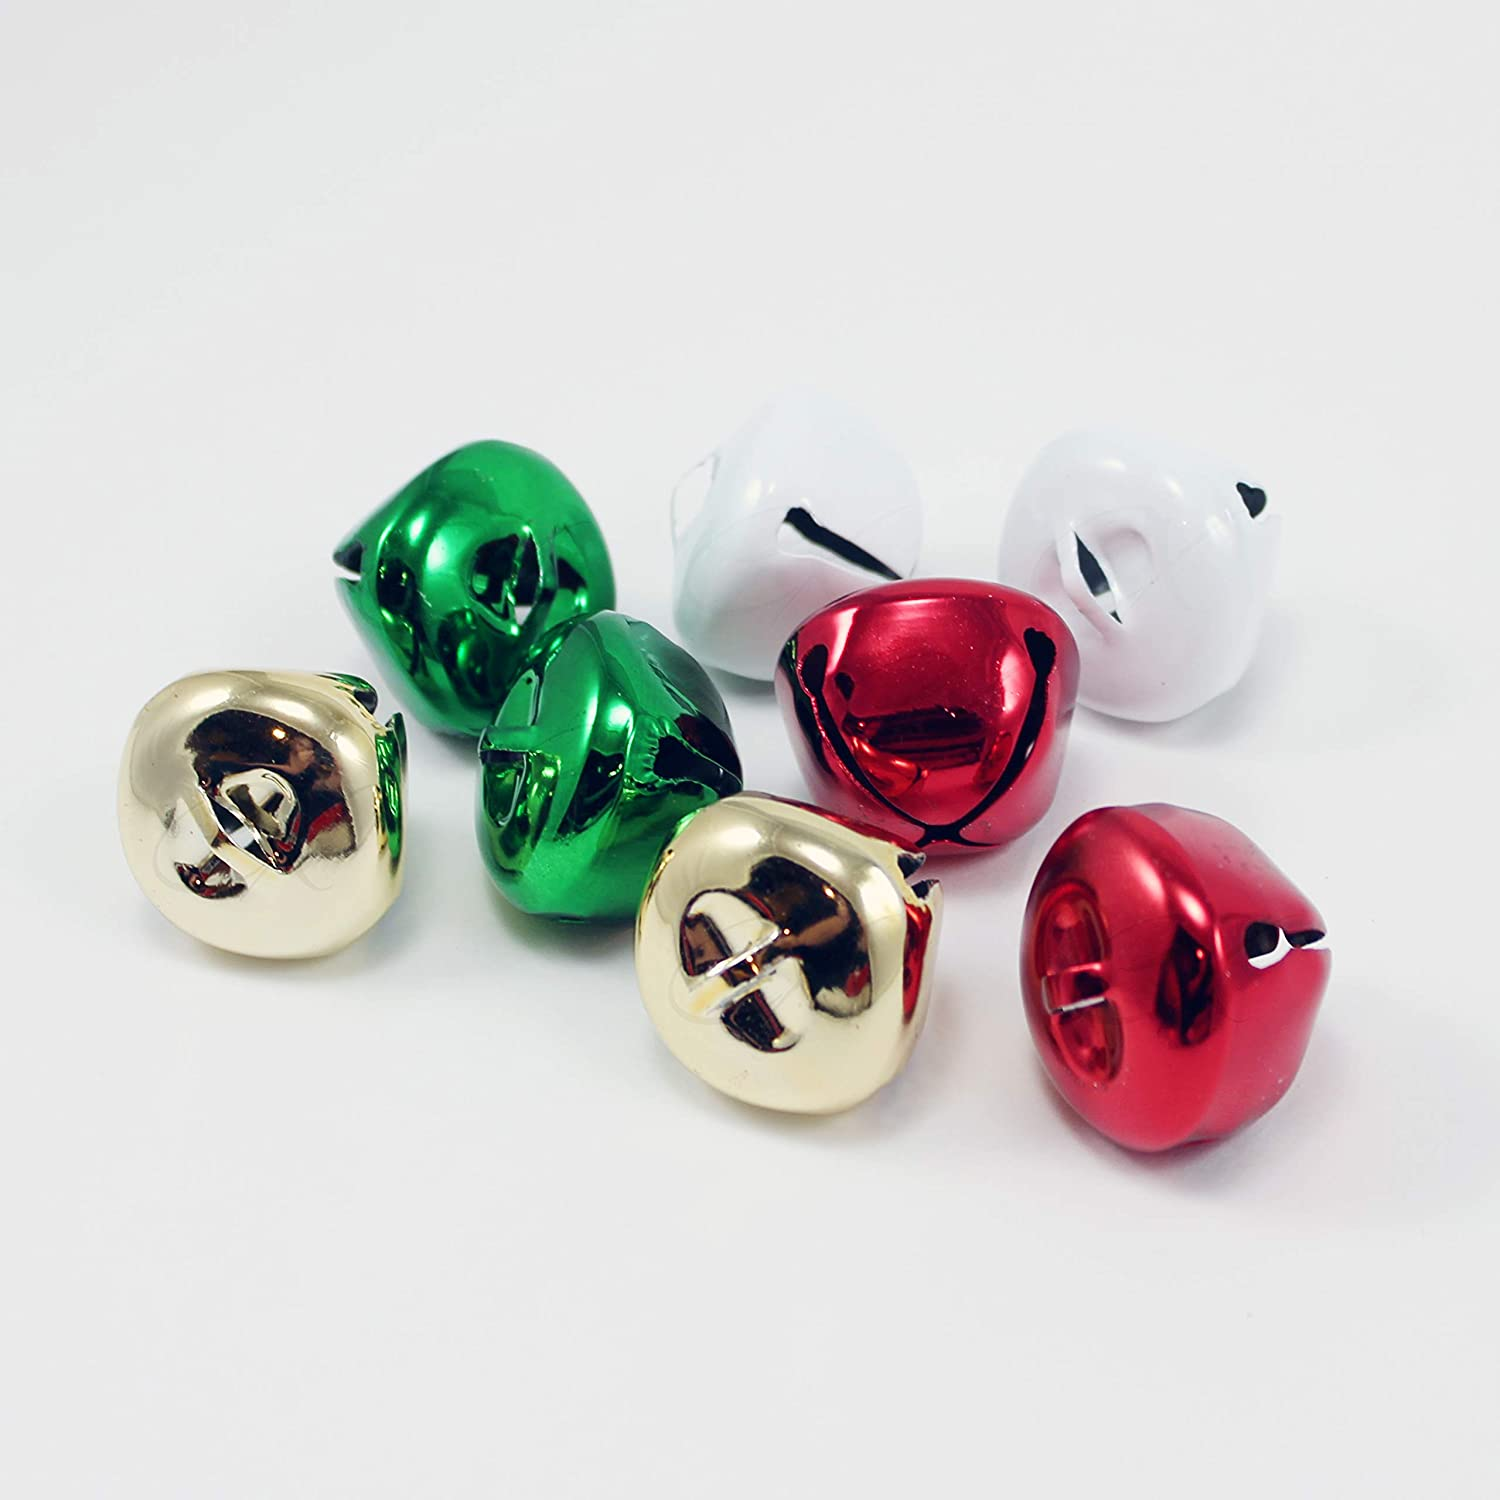 Jingle Bells Red/White/Green/Gold 8 PC Large Size 35mm Approx 1-3/8 Each Distribue